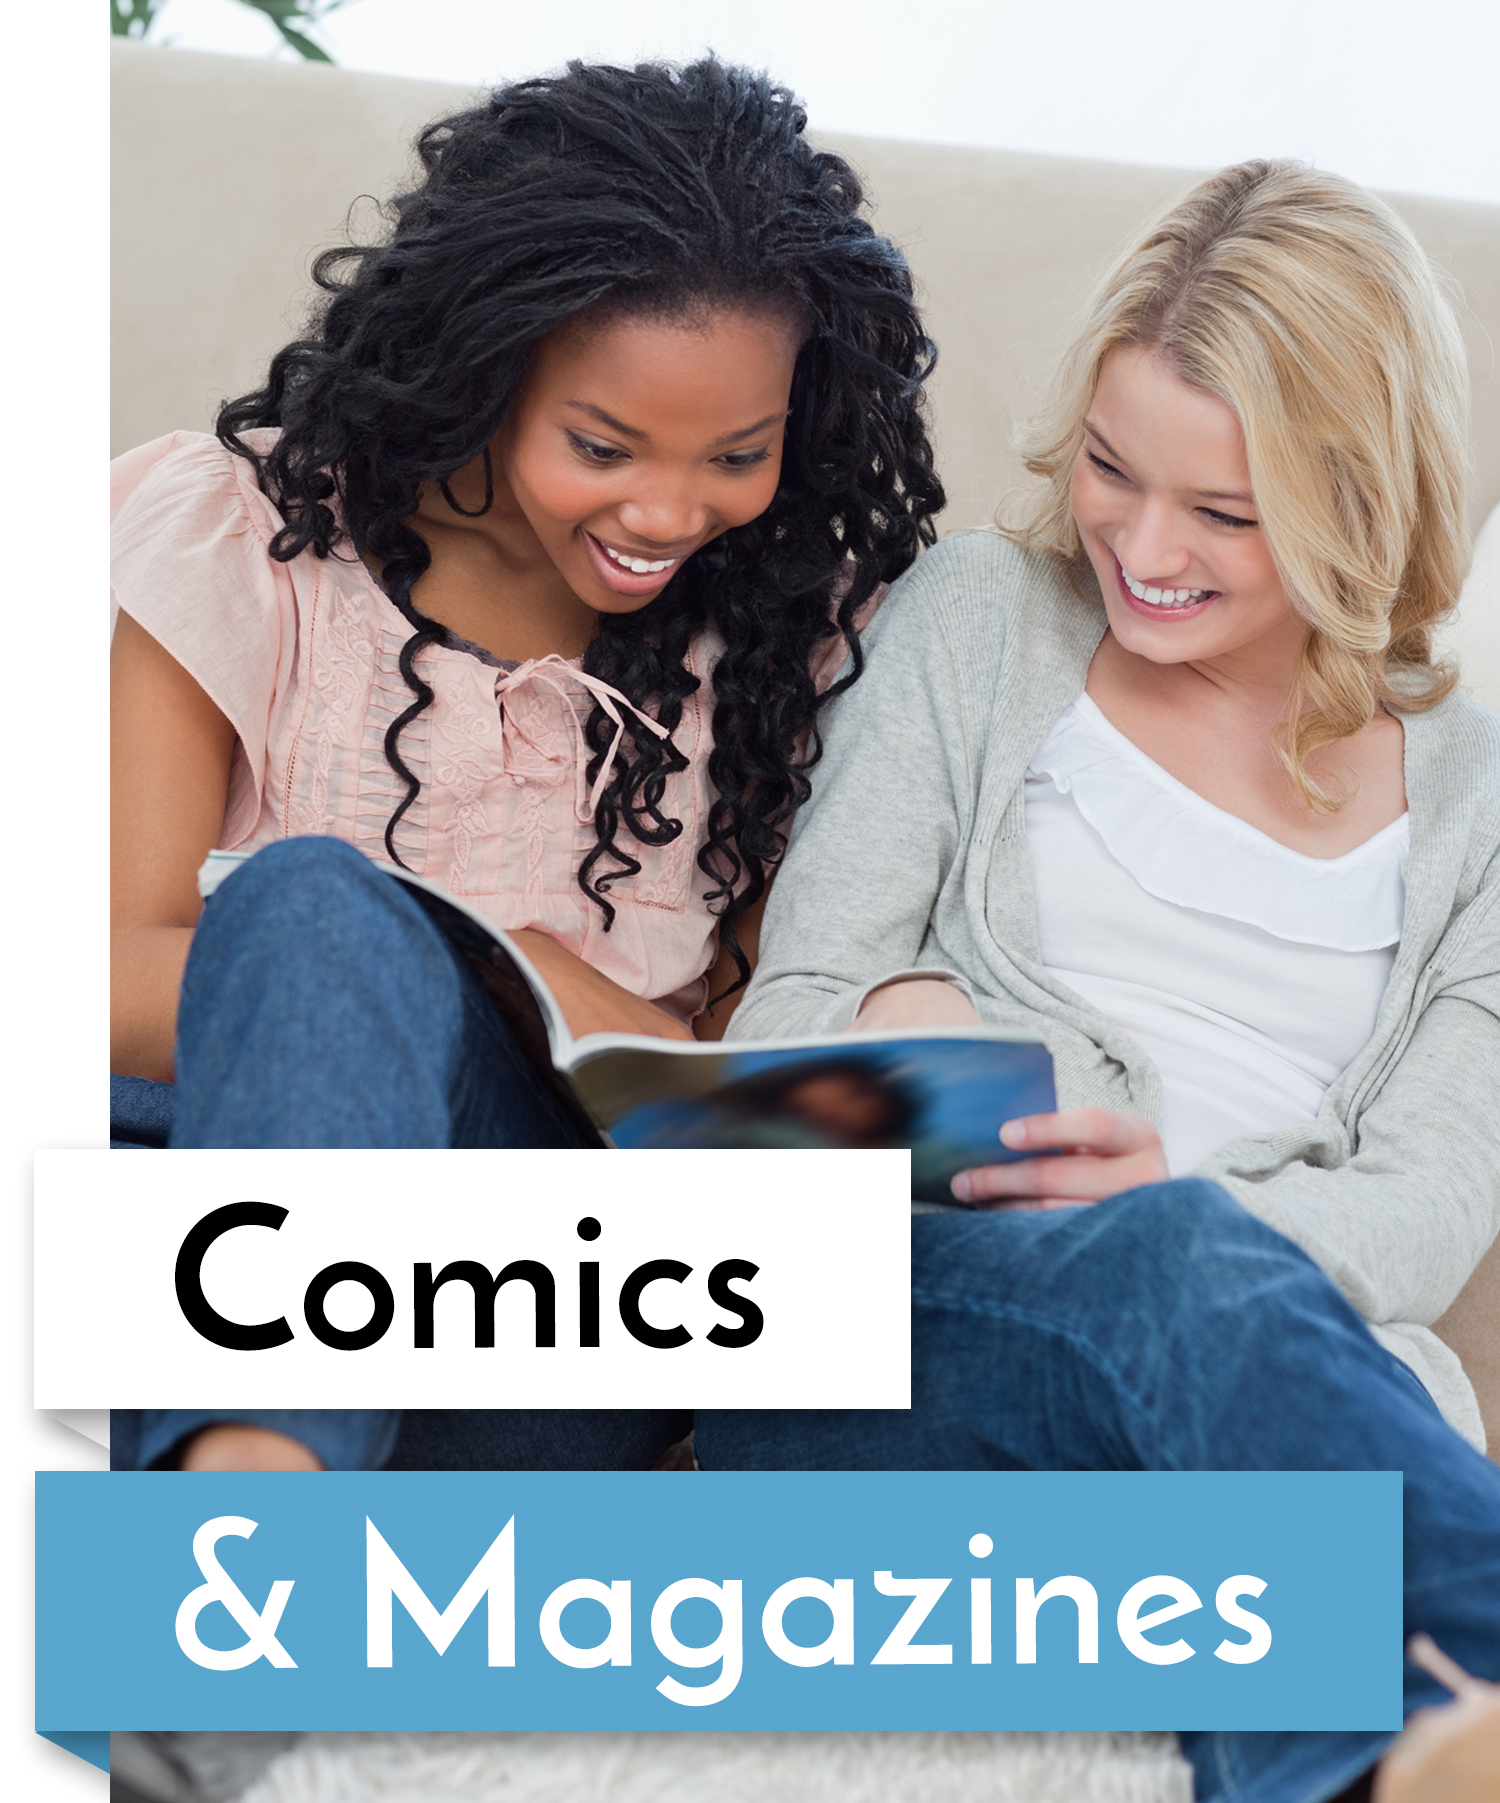 comics and magazines button